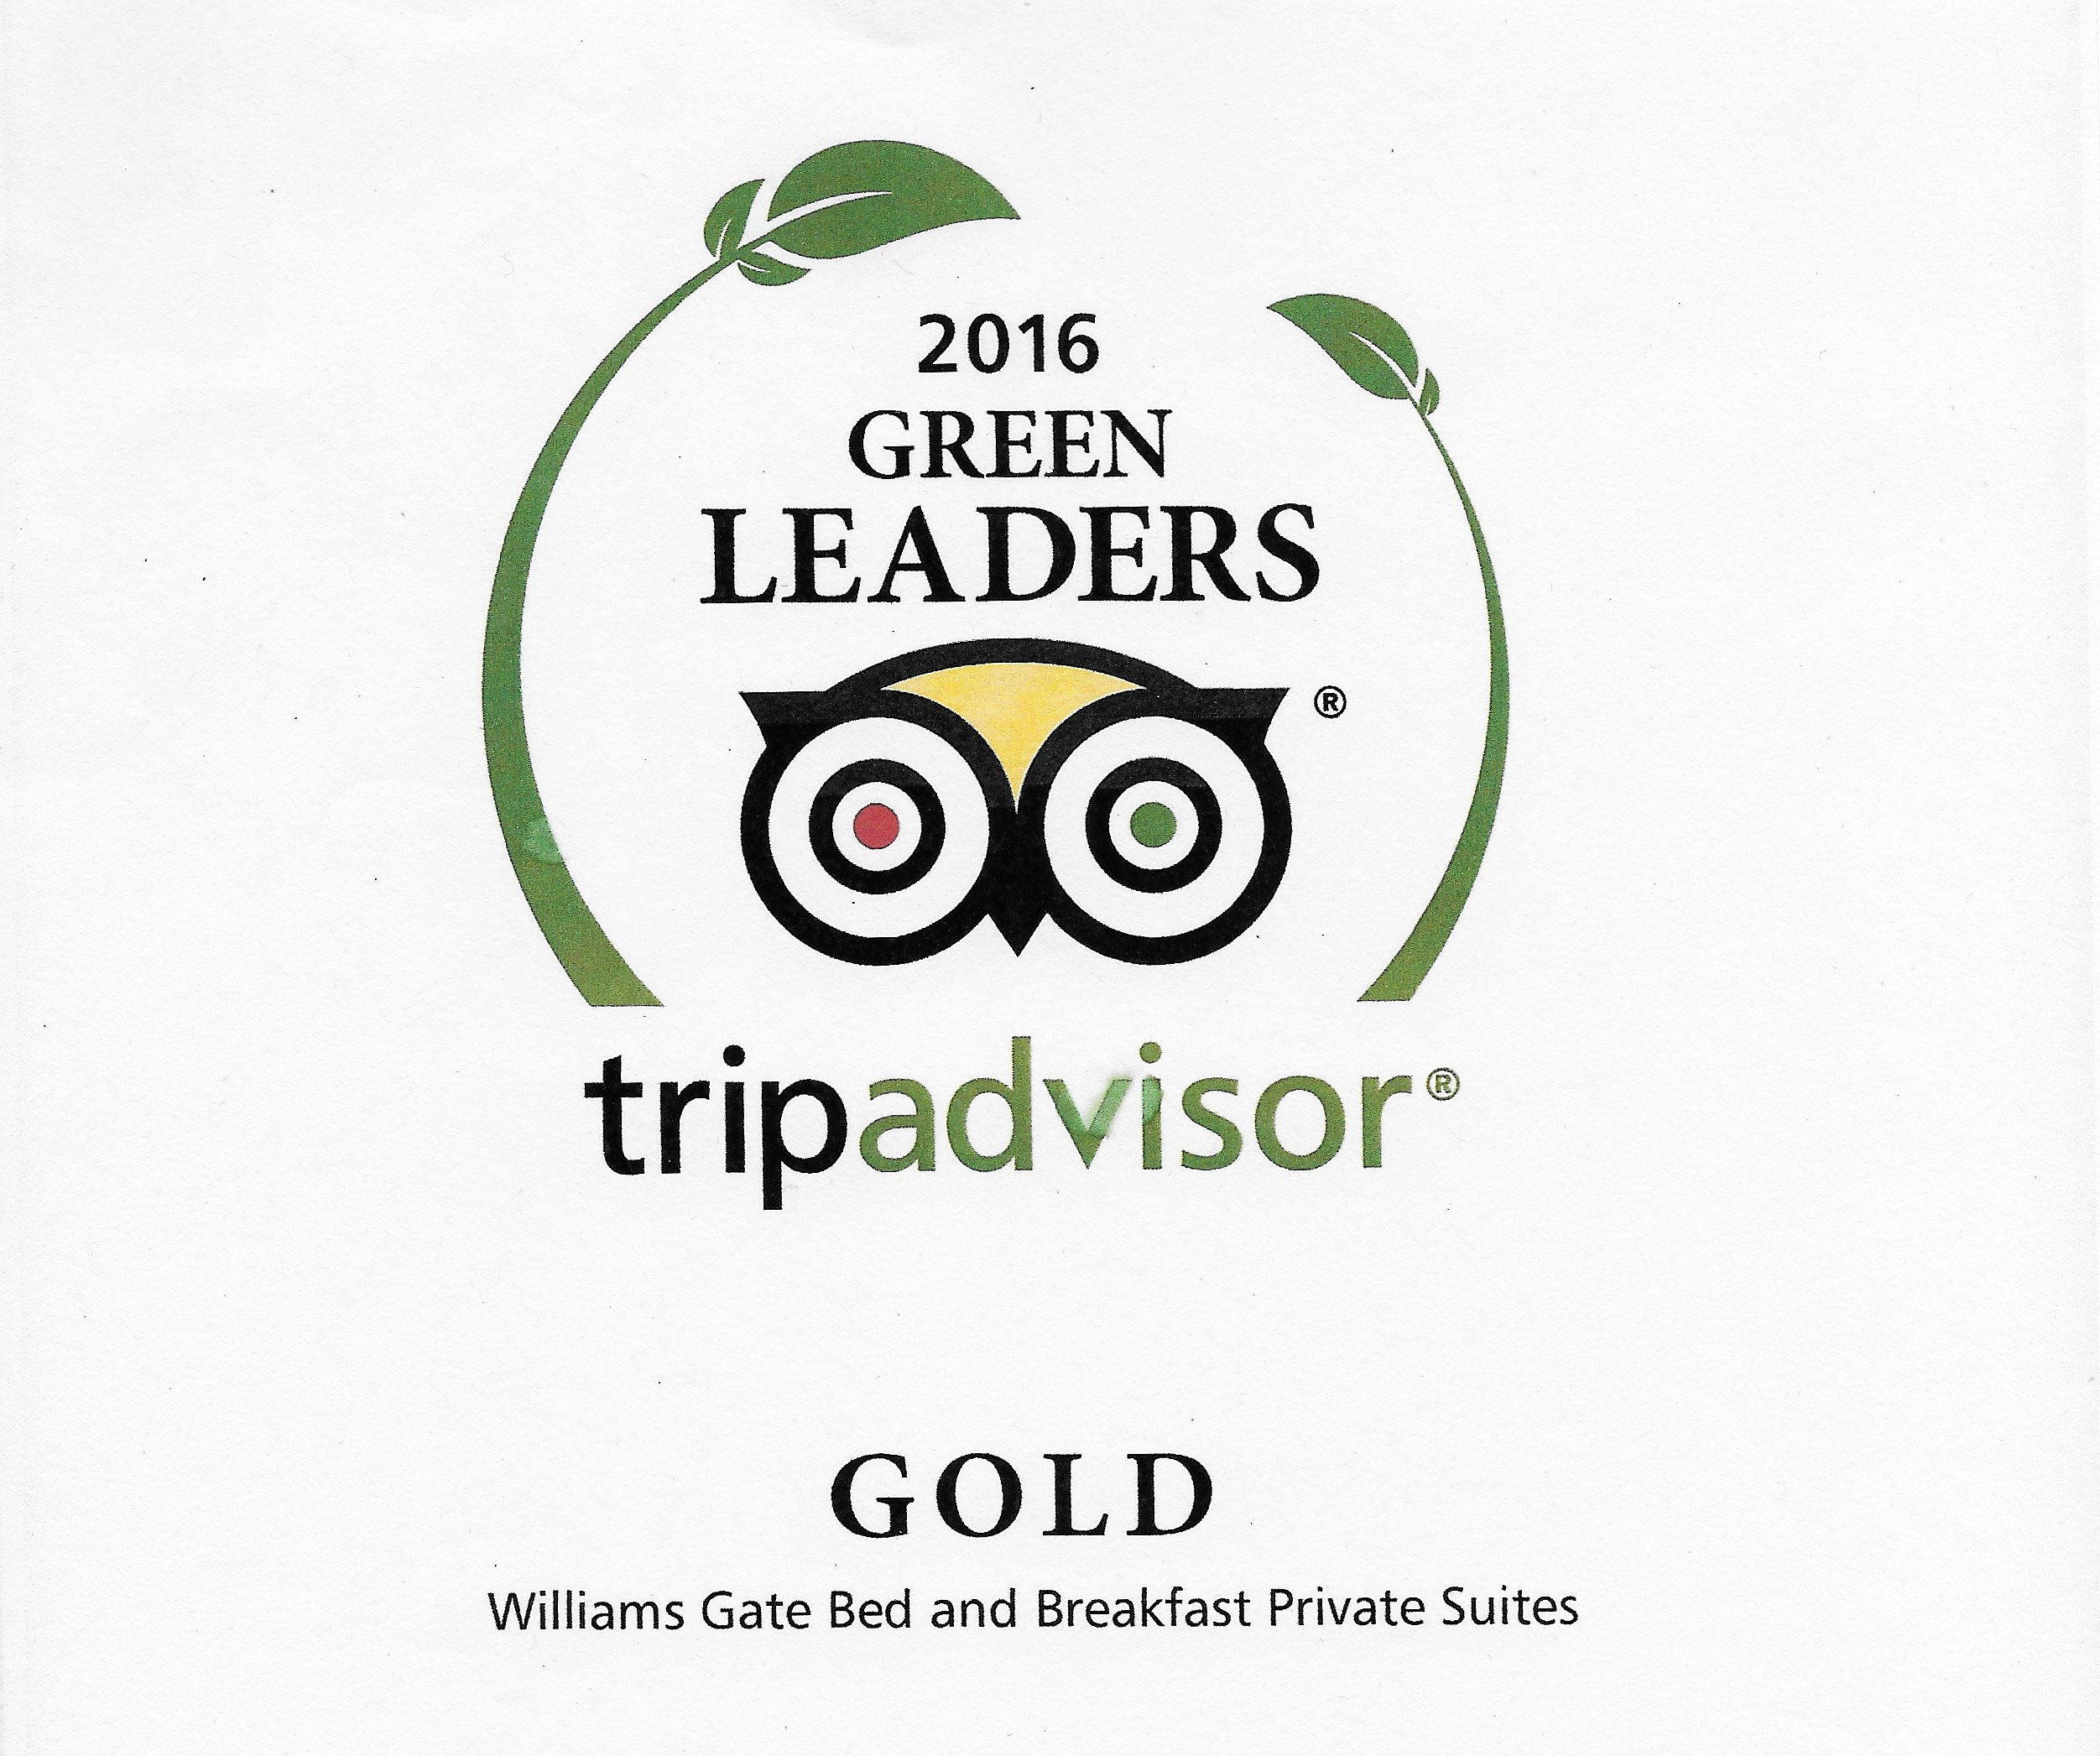 Williams Gate B&B Private Suites Niagara-on-the-Lake - Gold Green Leader on TripAdvisor